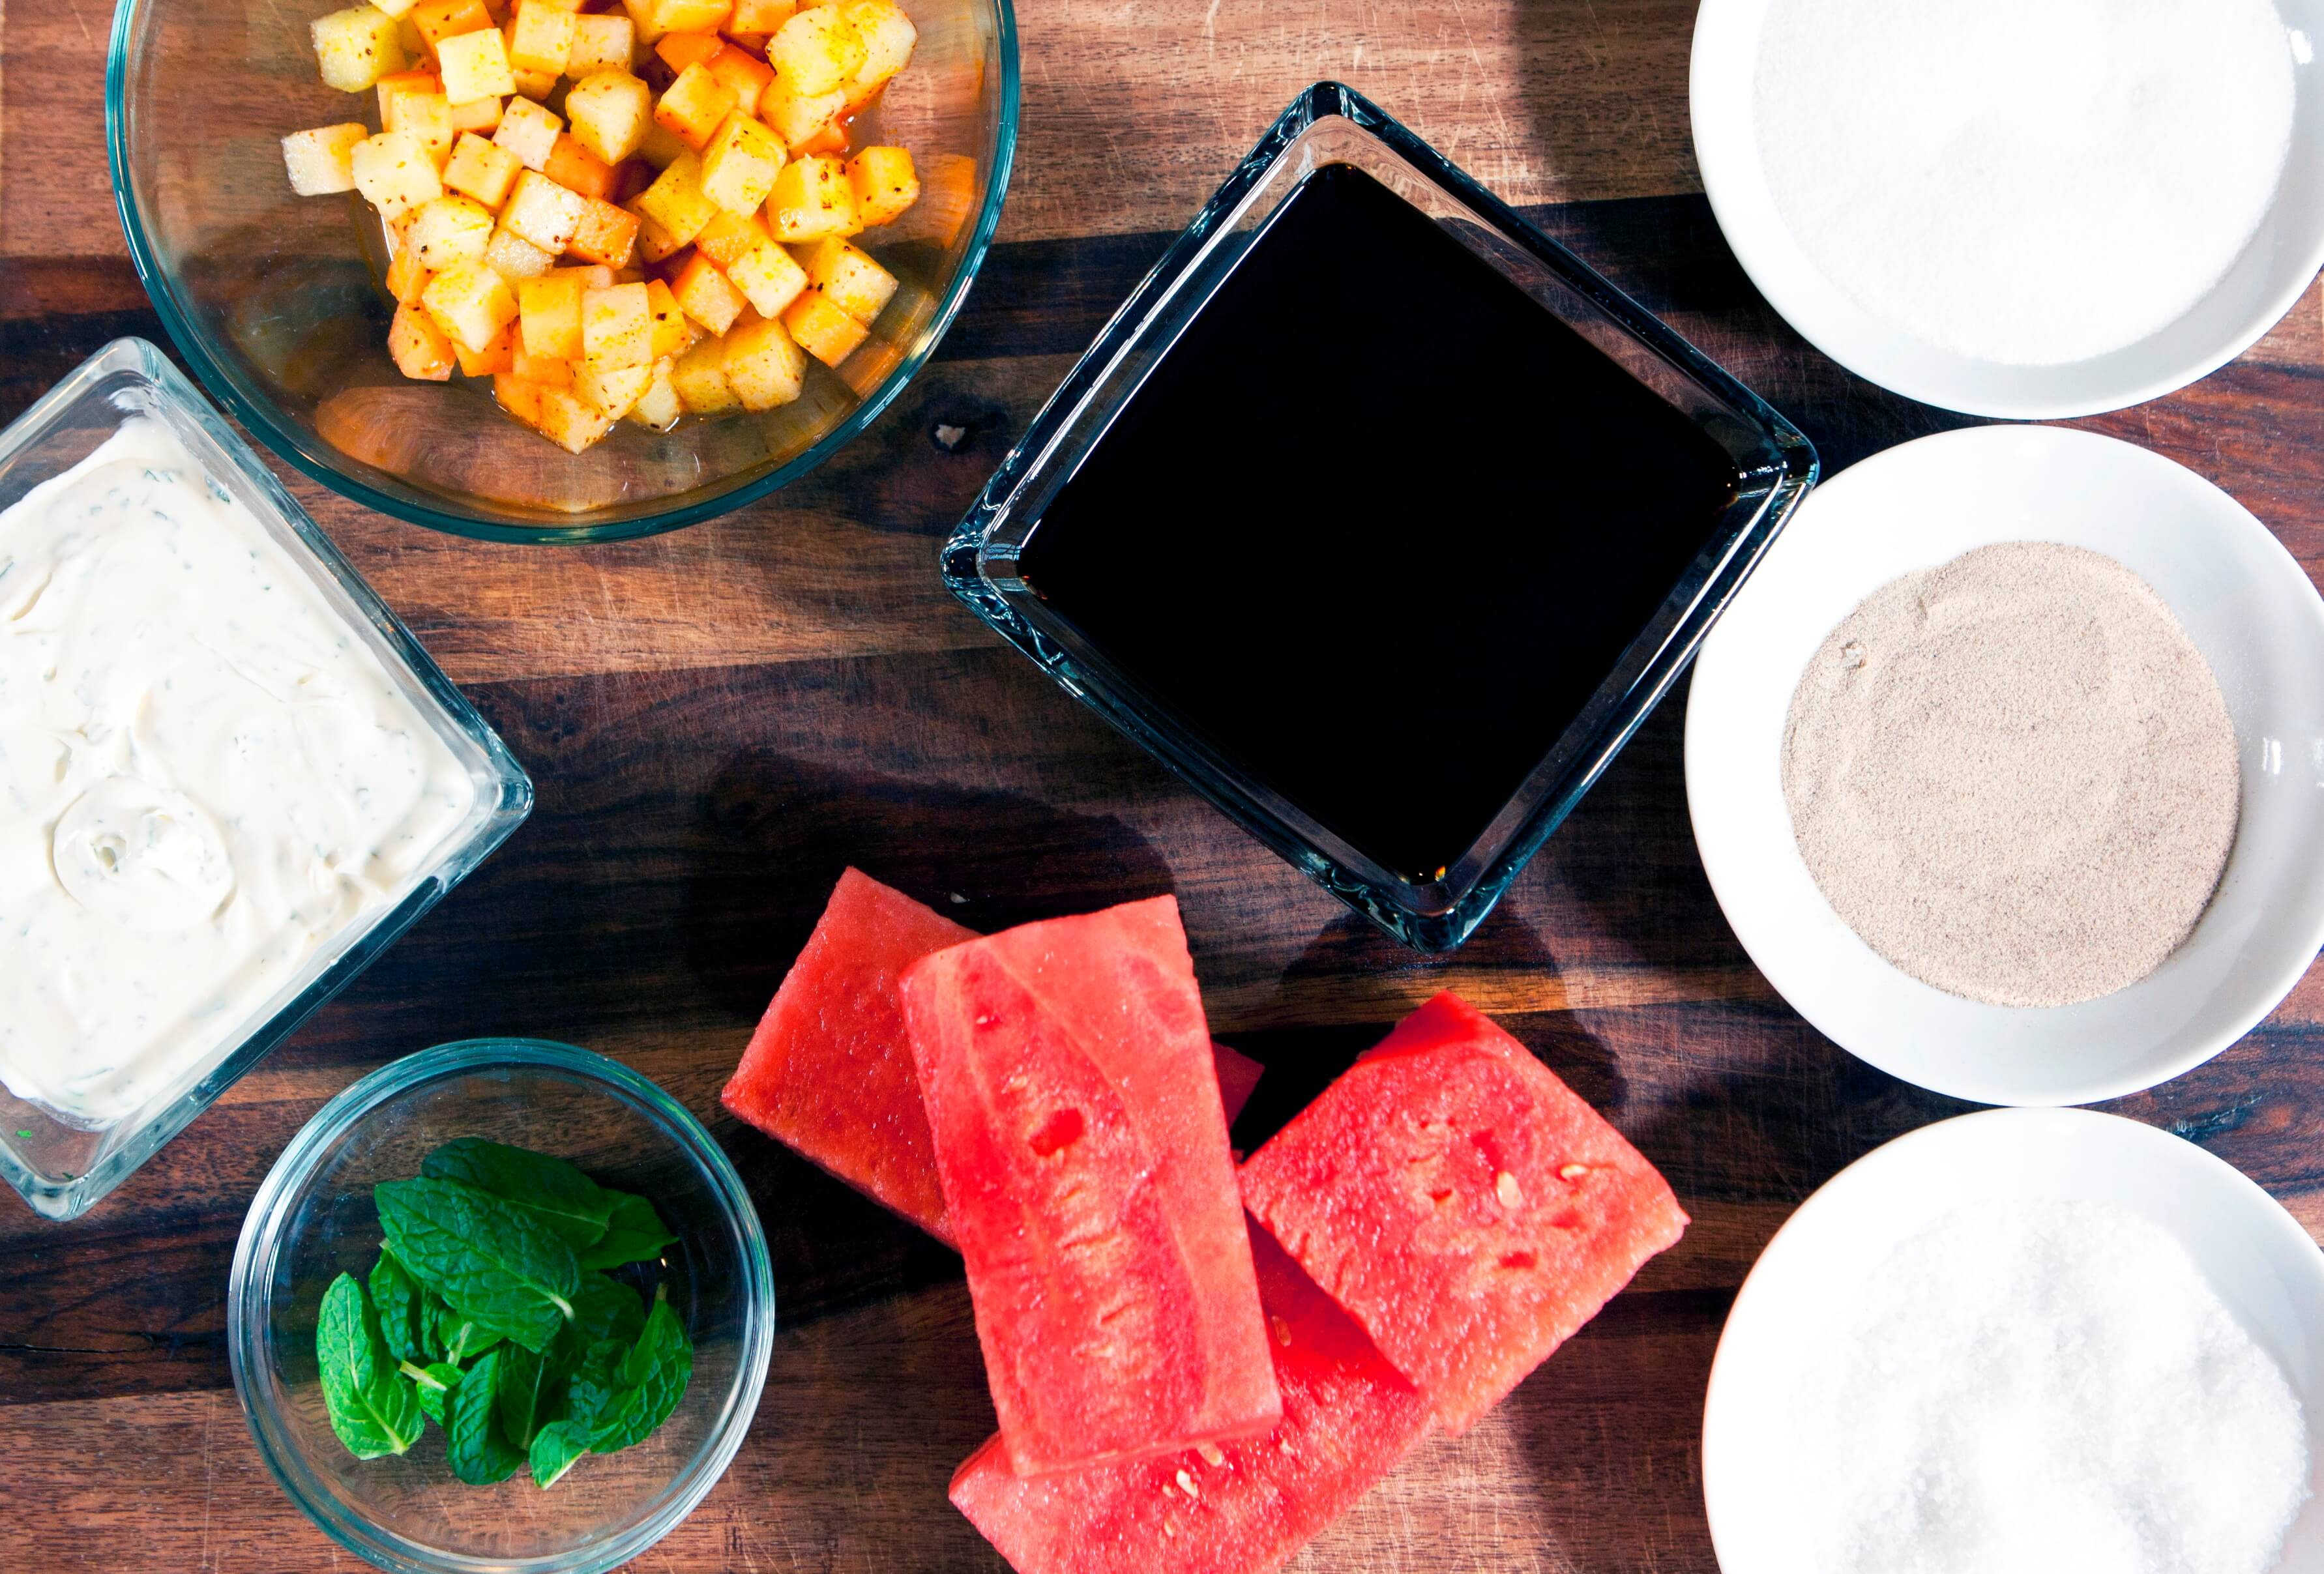 The key to this dish is choosing a perfectly ripe watermelon: not too firm but not too watery.